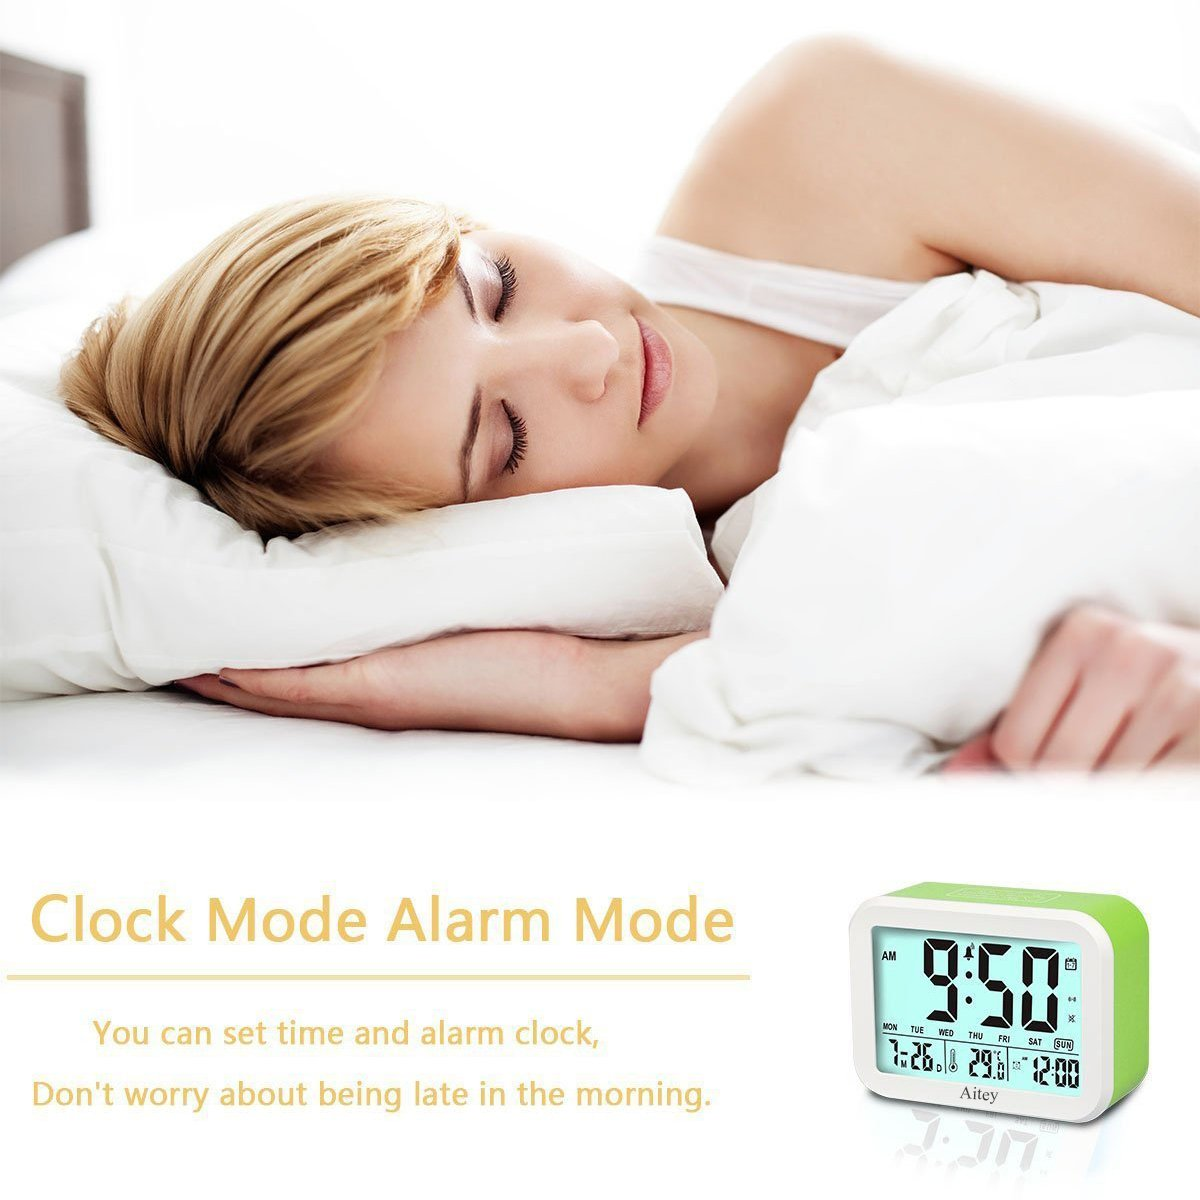 Digital Alarm Clock, Aitey Talking Clock with 3 alarms, Optional Weekday Alarm, Intelligent Noctilucent & Snooze Function, Month Date & Temperature Display for Adults, Kids & Teens (Green) by Aitey (Image #7)